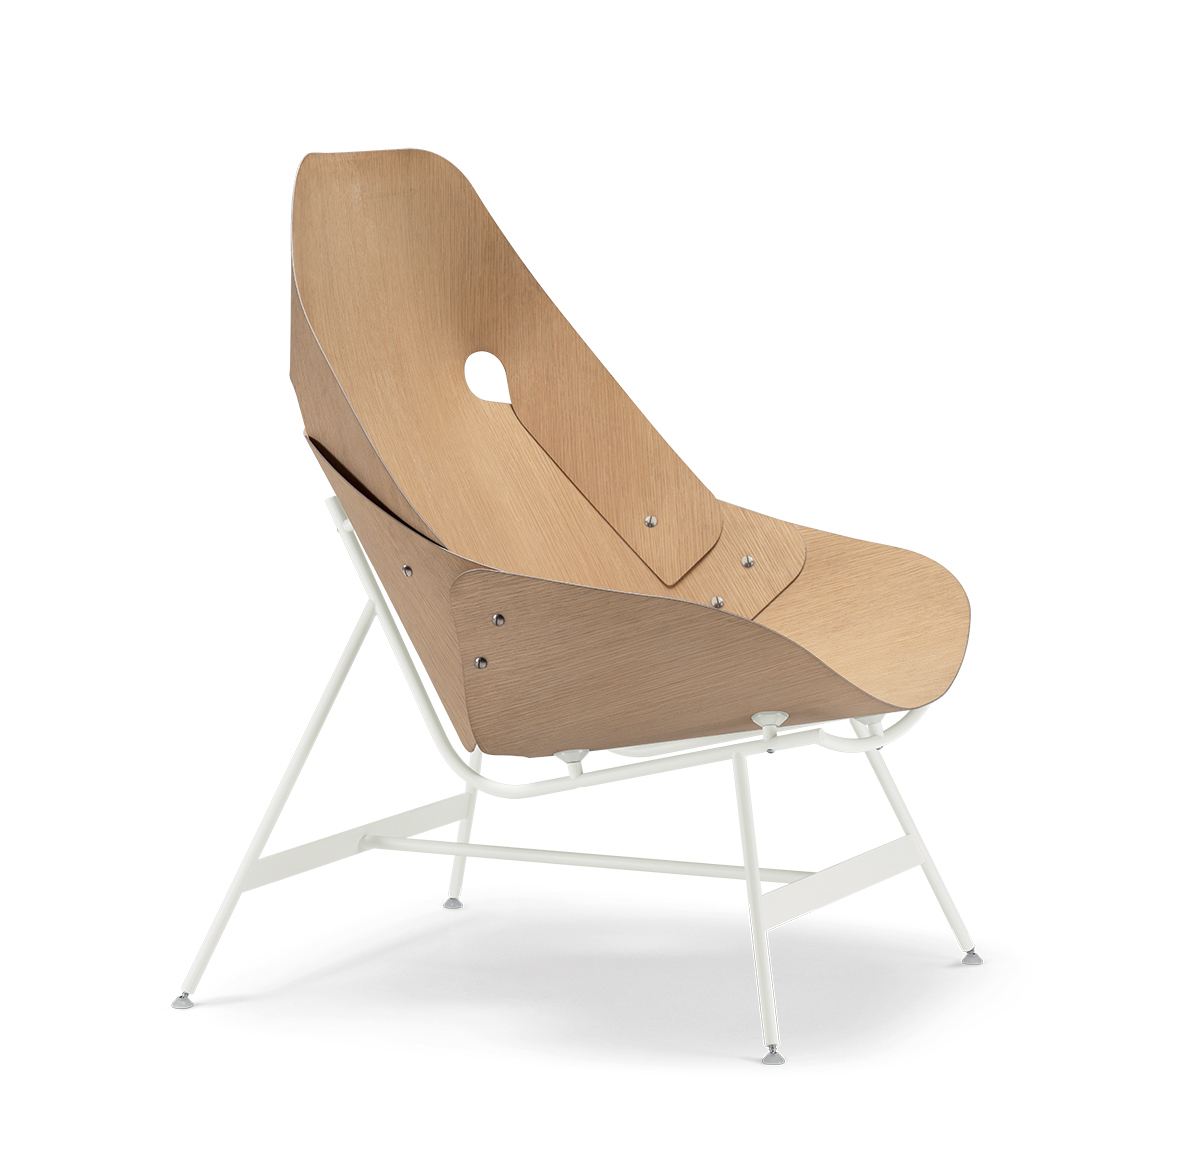 Time armchair, design Alfredo Häberli 2019, Alias.